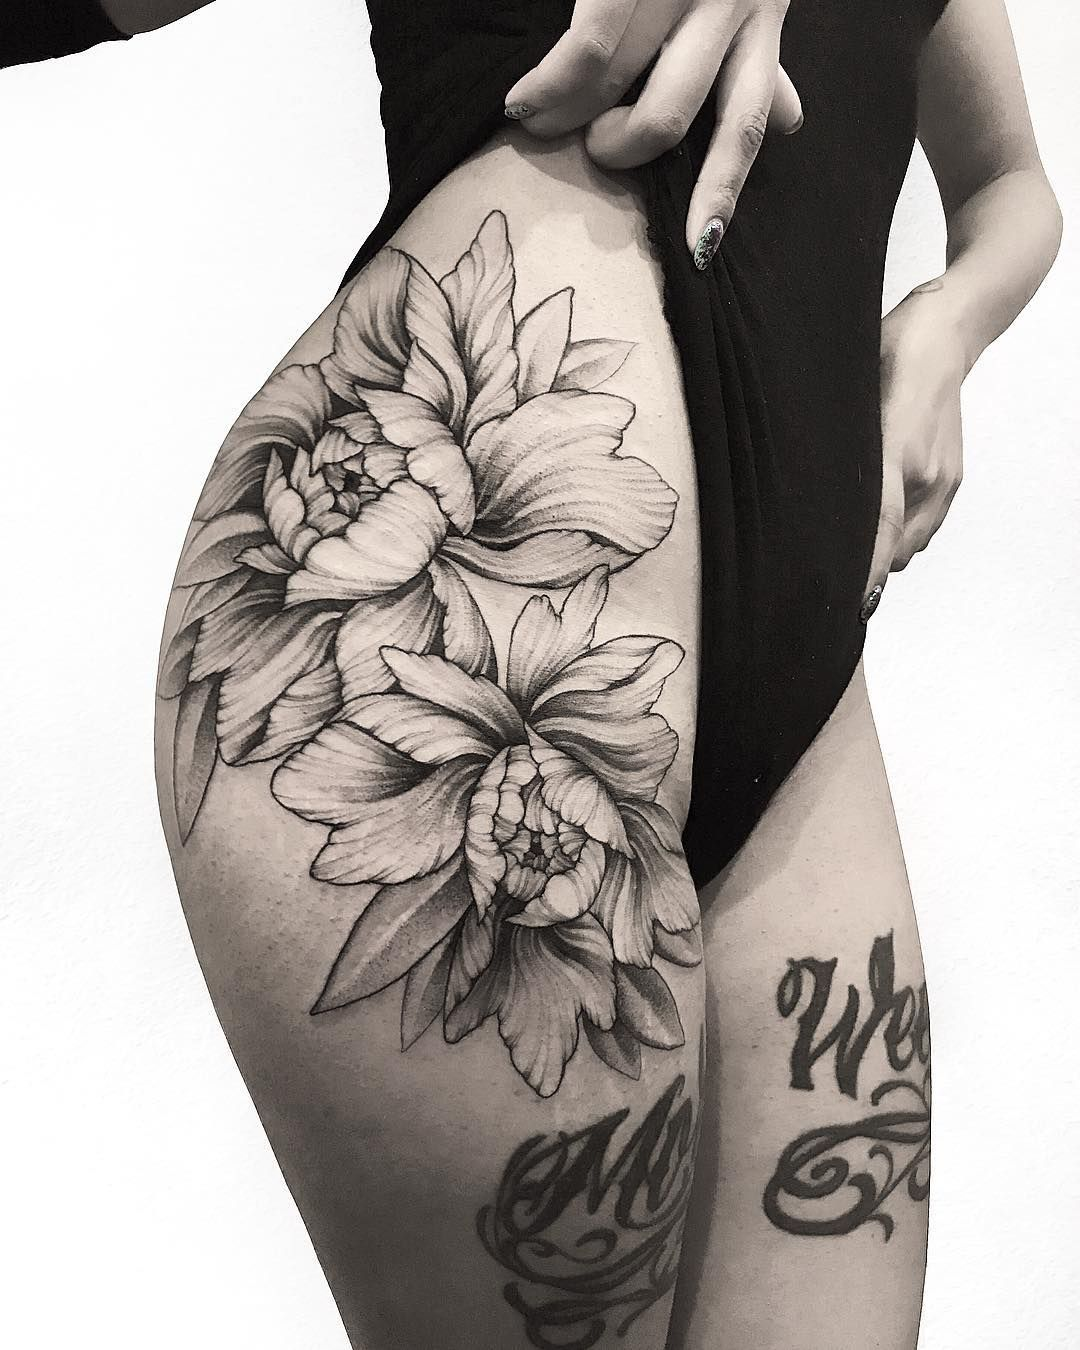 Large tattoos require a large commitment, but they are certainly a show-stopper. There's a lot to consider before getting a large tattoo and we've put together the ultimate guide.